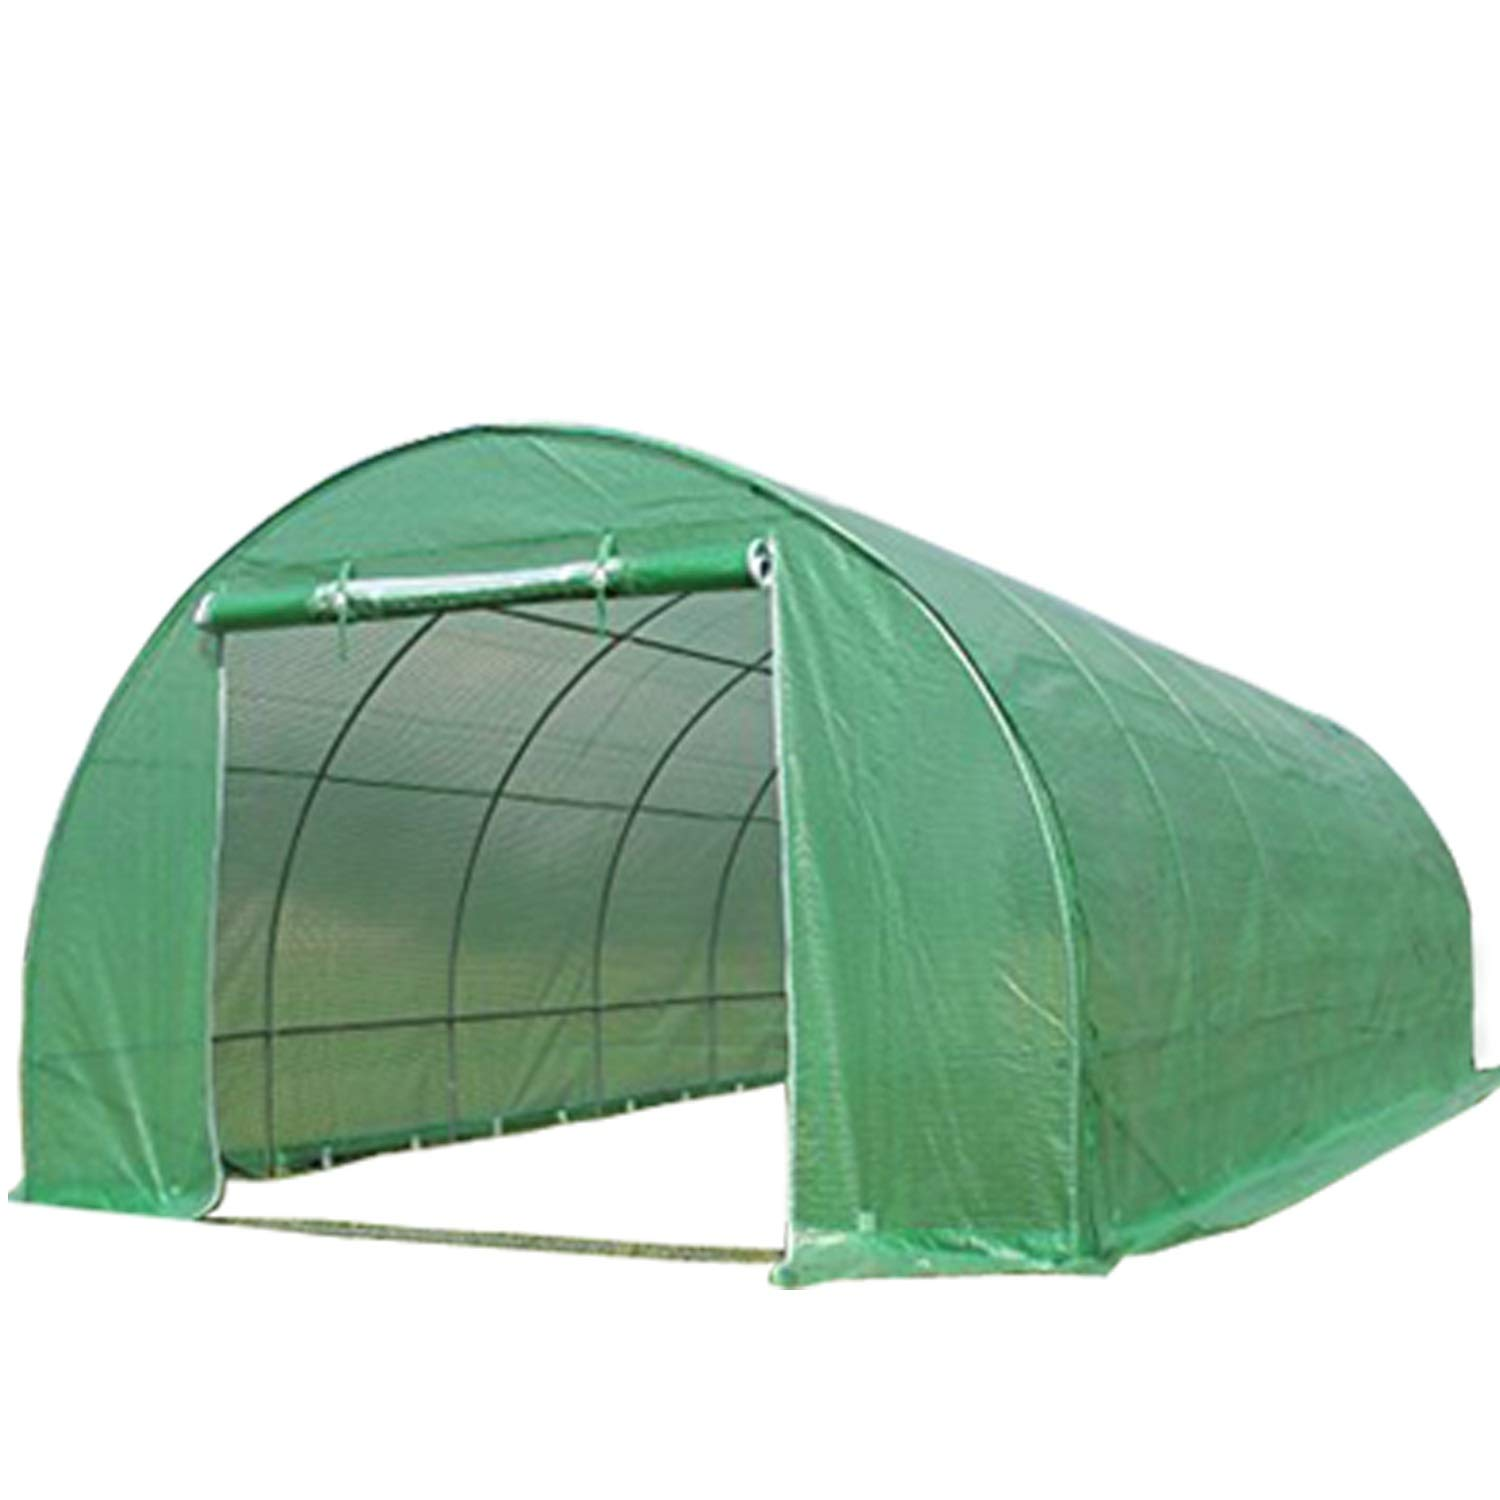 DELTA Canopies Greenhouse 20'x10' (B2) 94 lbs - Green House Walk in Hot House